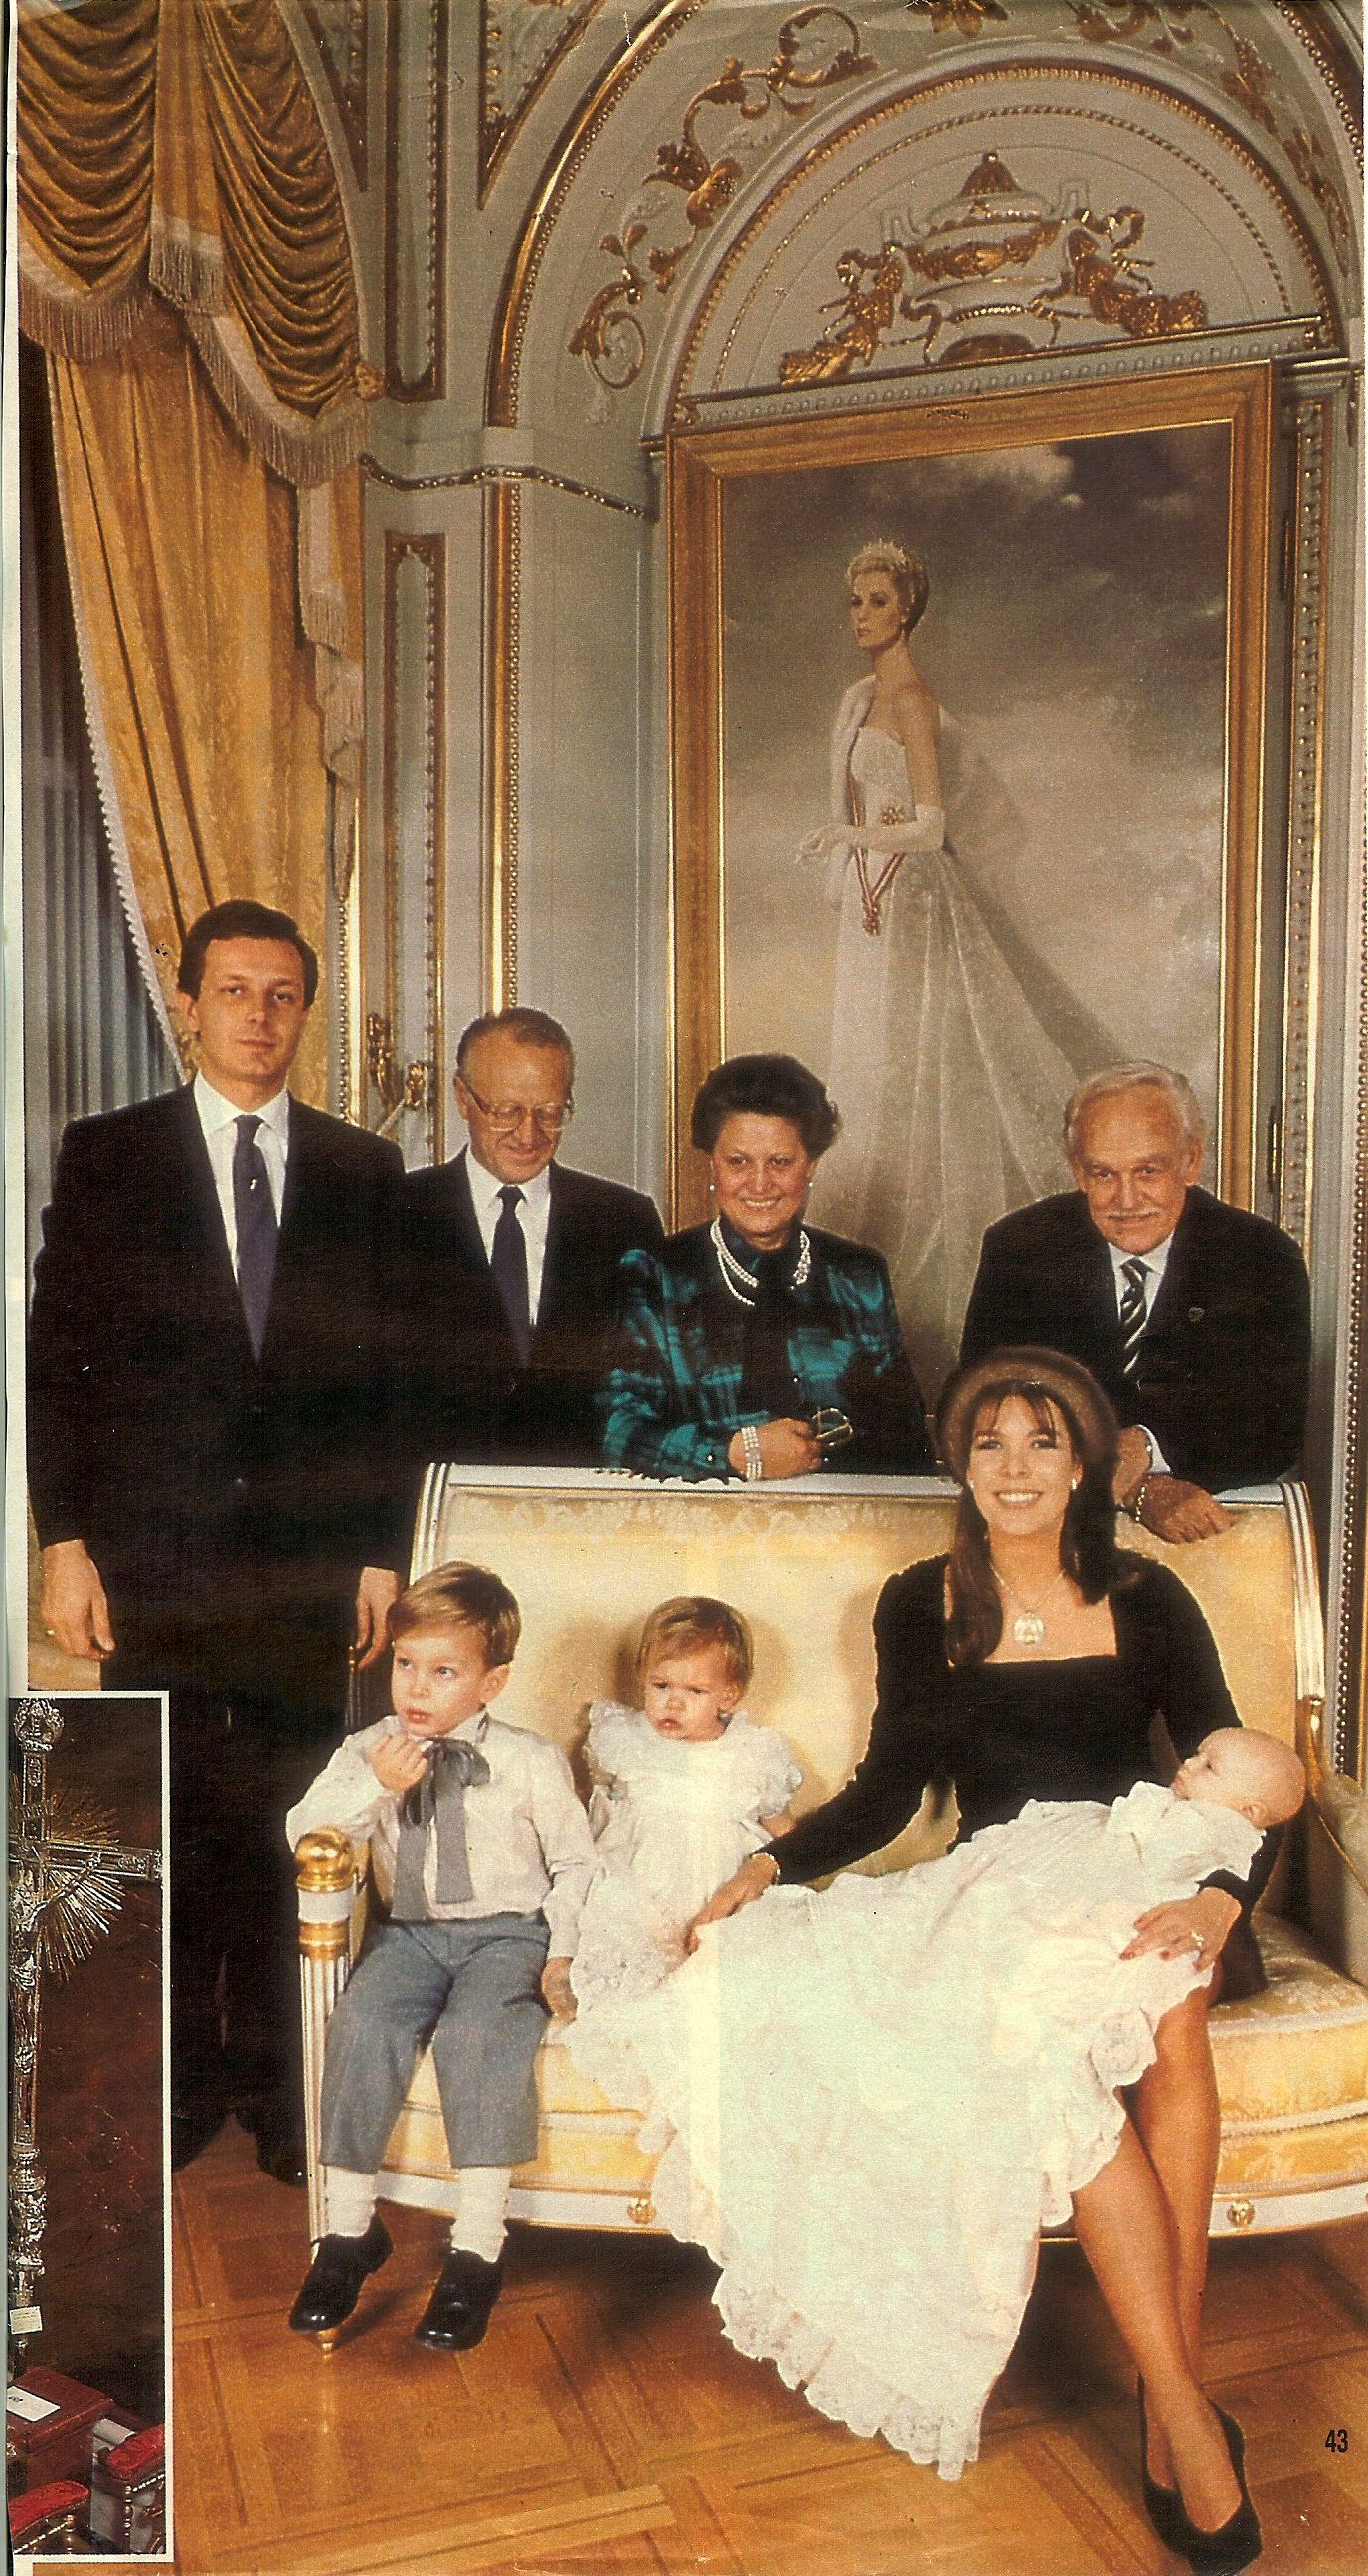 royal family of Monaco standing in front of a portrait of